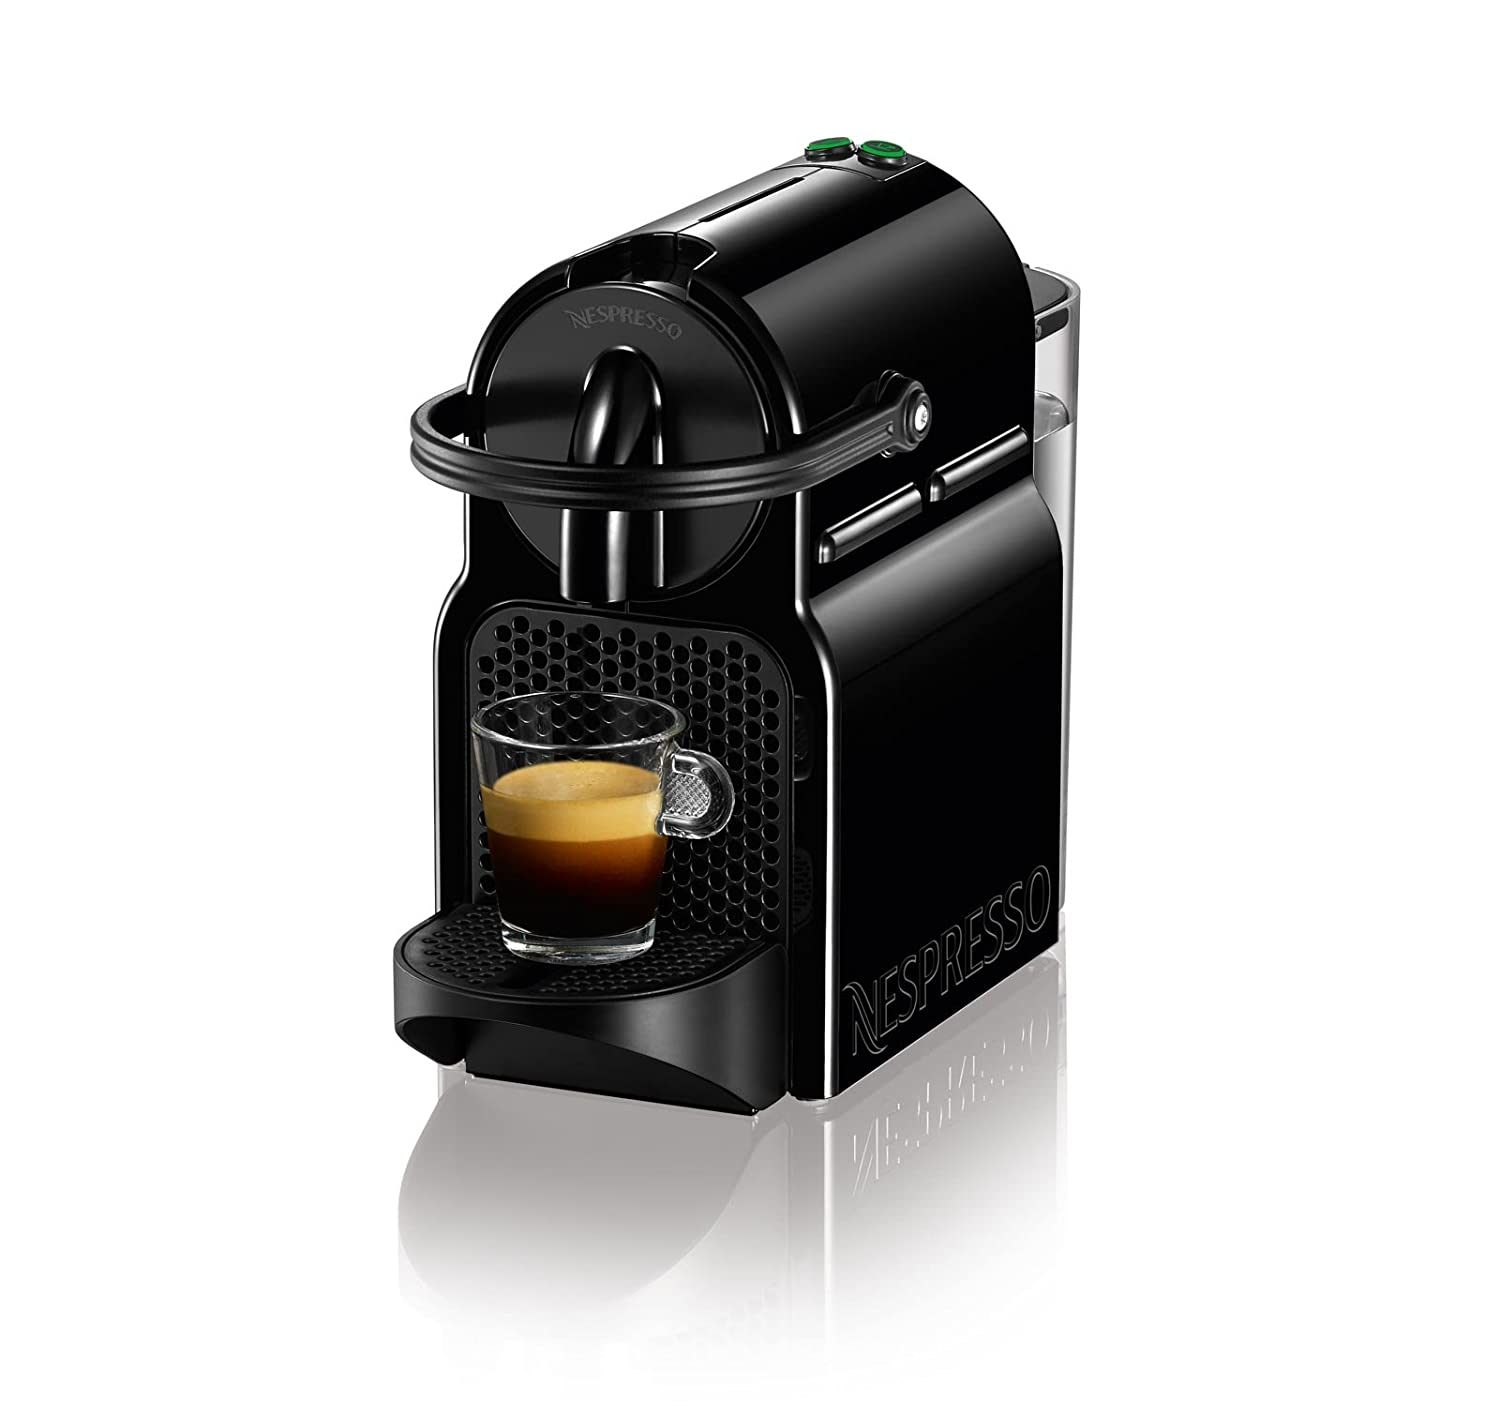 Good Coffee Makers Home Use : Inissia Maker Espresso Coffee Machine Nespresso Best Latte Kitchen Office Home